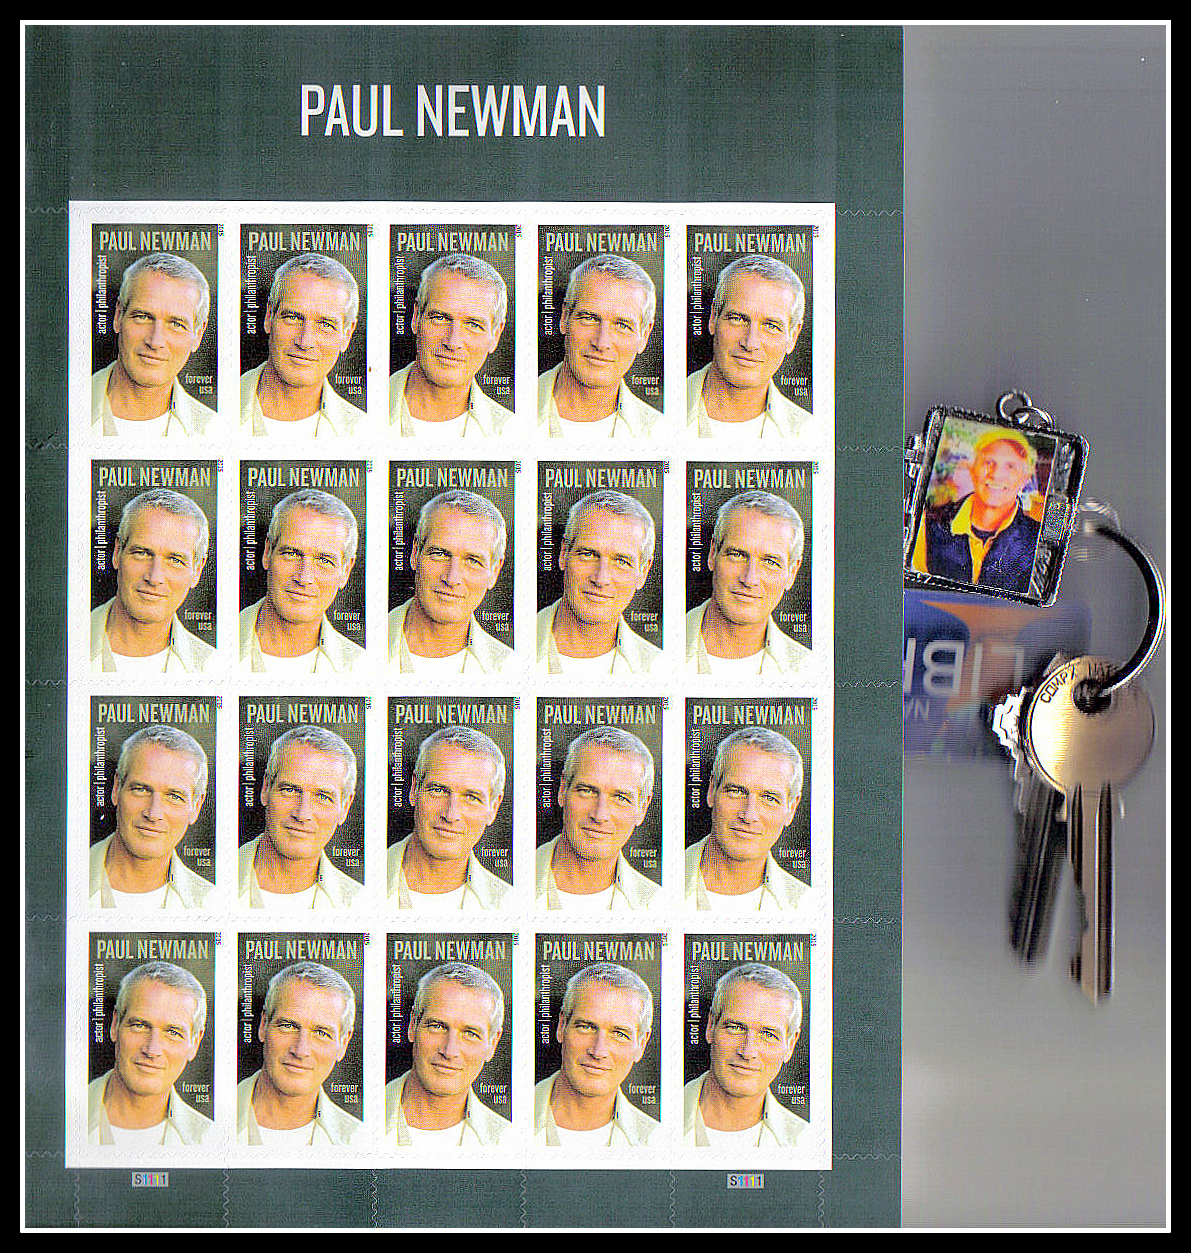 The PAUL NEWMAN Stamp With Jacks Keychain